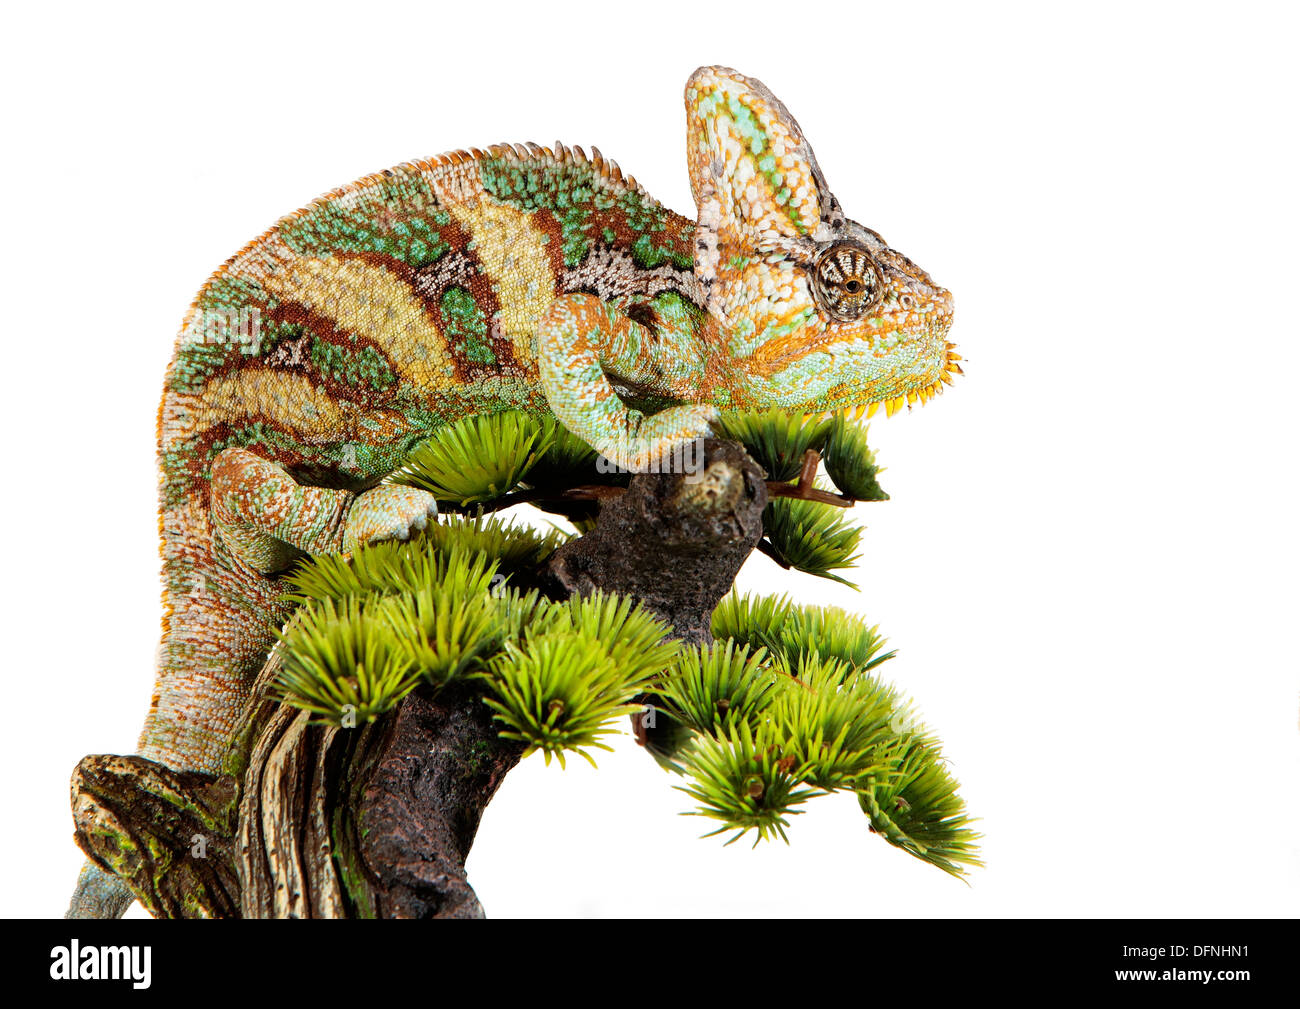 yemen chameleon in a host of artificial white background - Stock Image